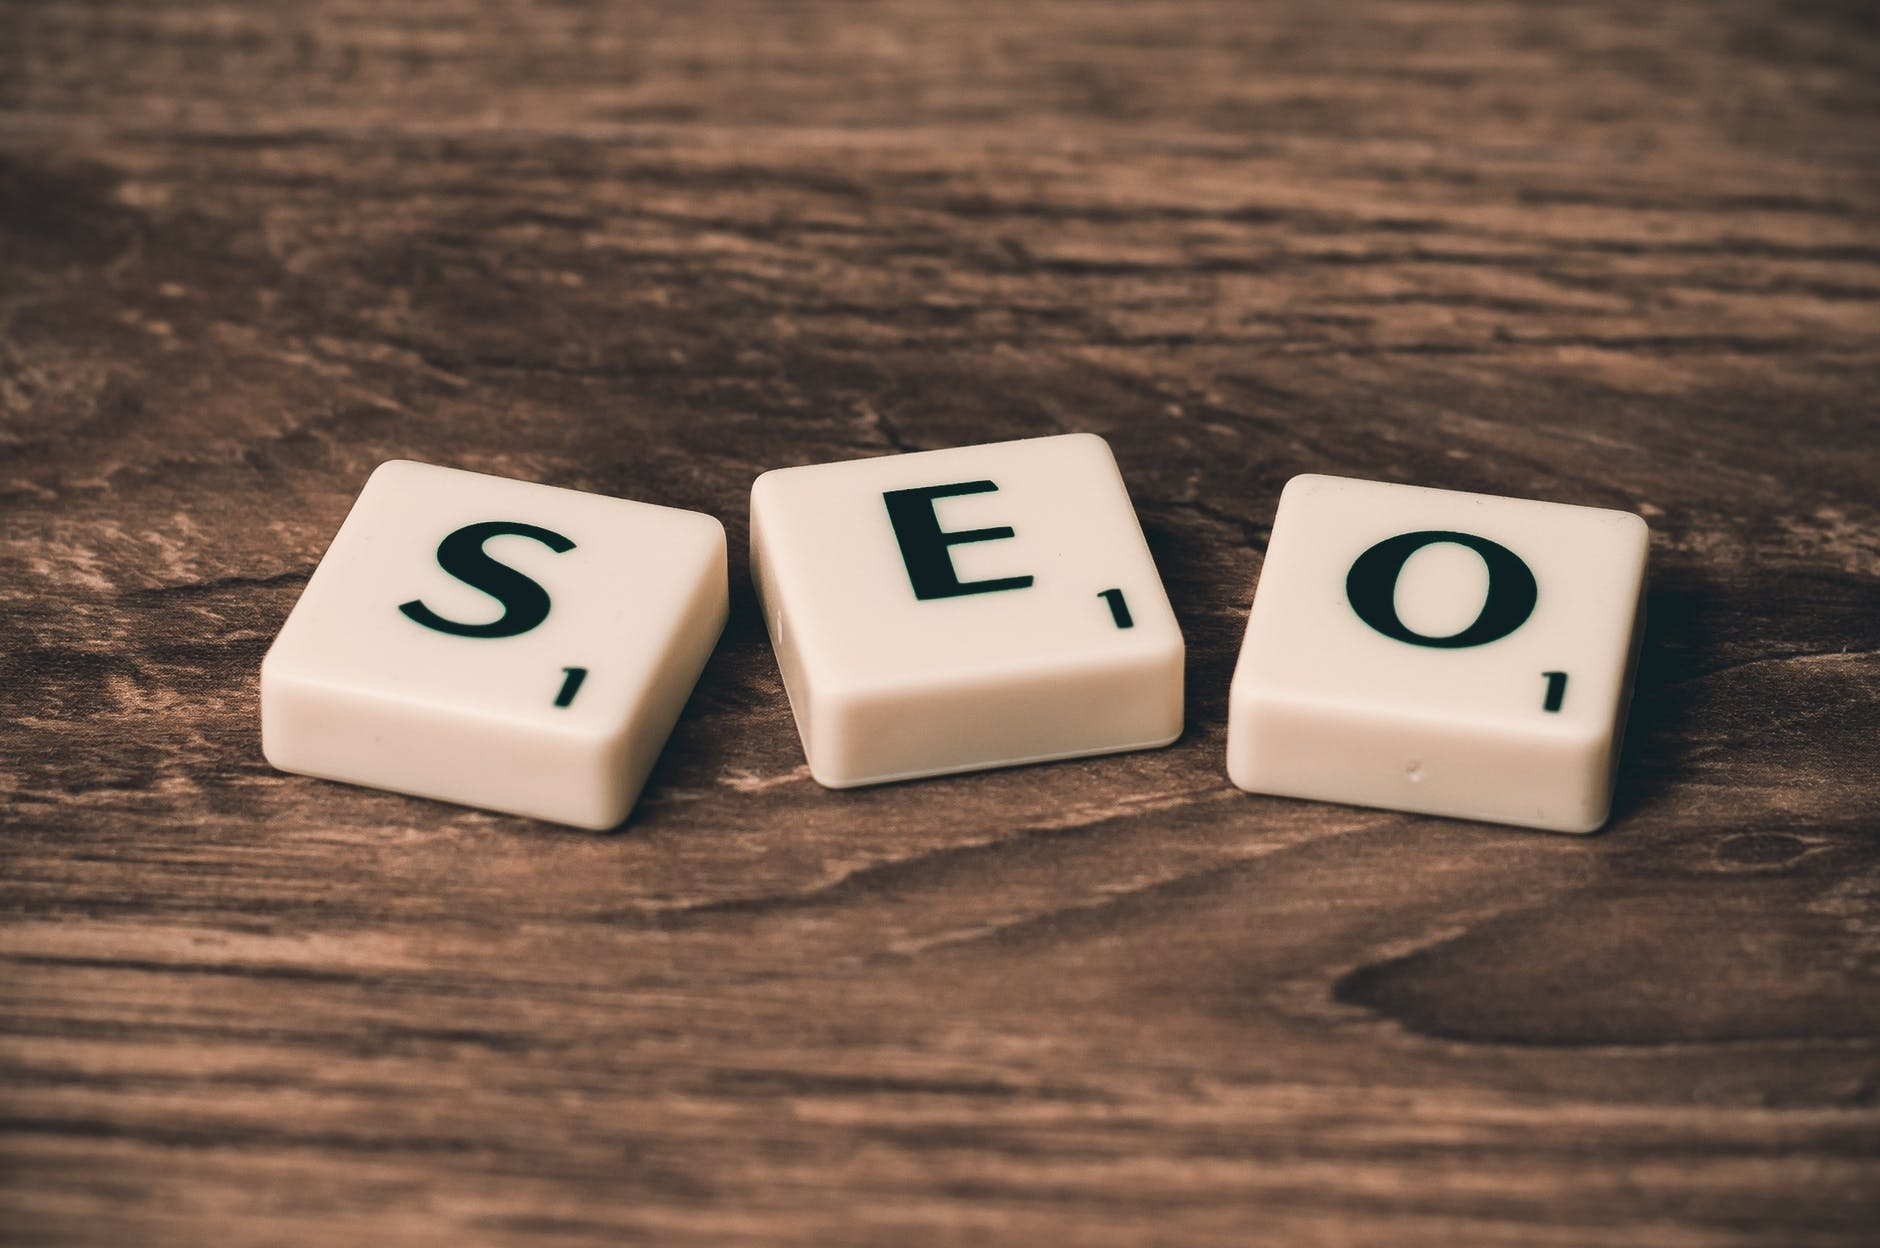 Search Engine Optimization (SEO) - By increasing your social media's relevancy to search engines like Google, you will receive more traffic through your content and message.